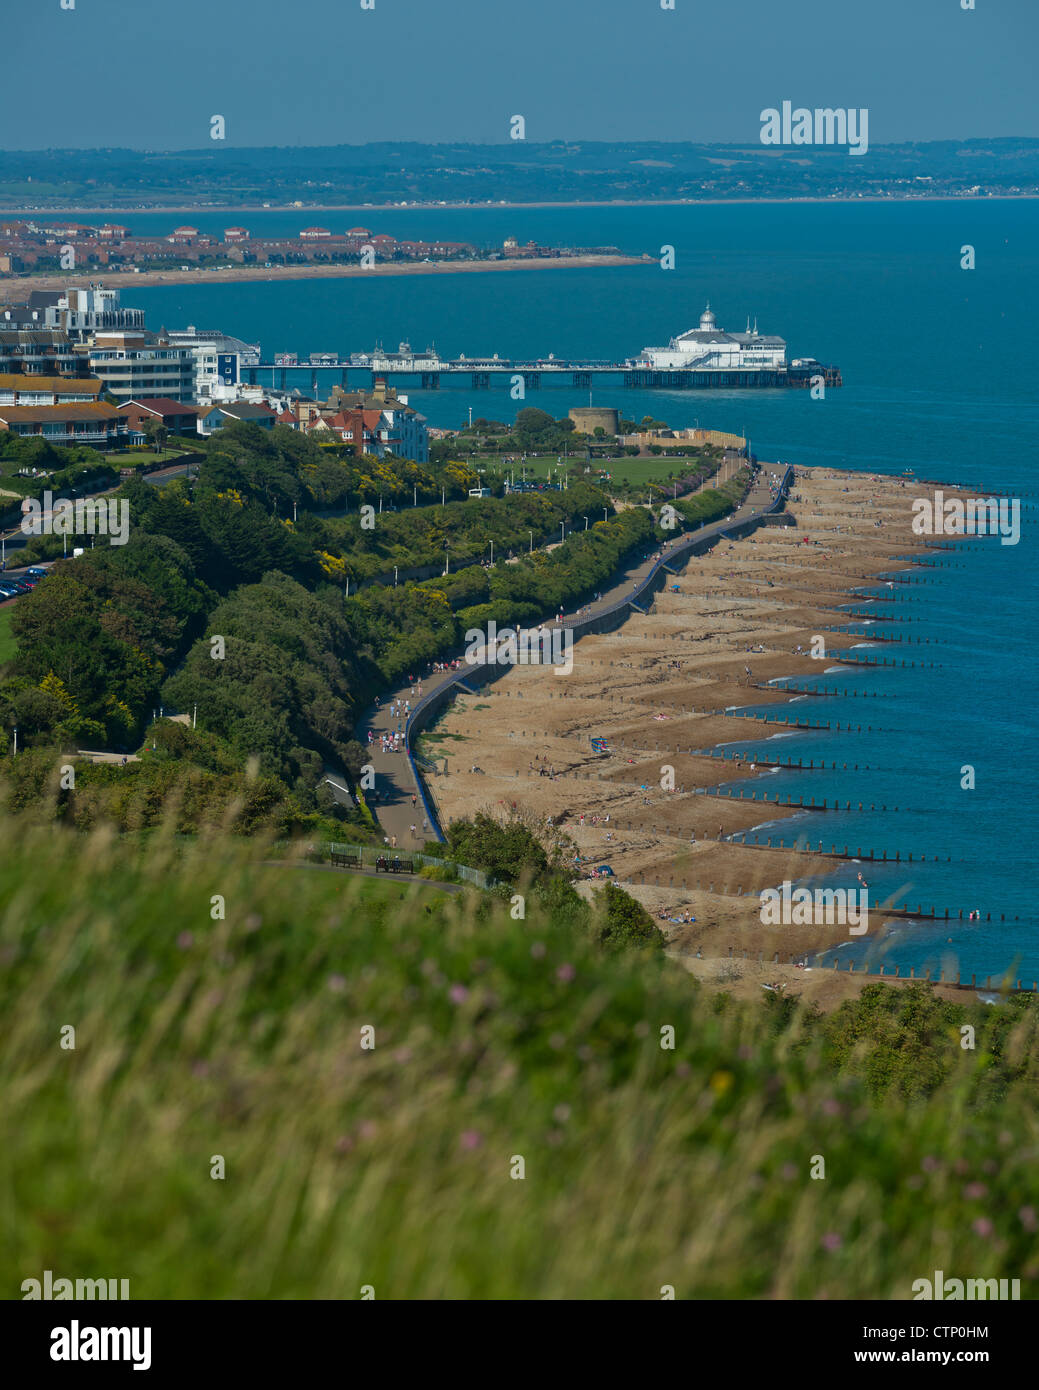 Eastbourne viewed from The South Downs National Park, East Sussex, England, UK Stock Photo